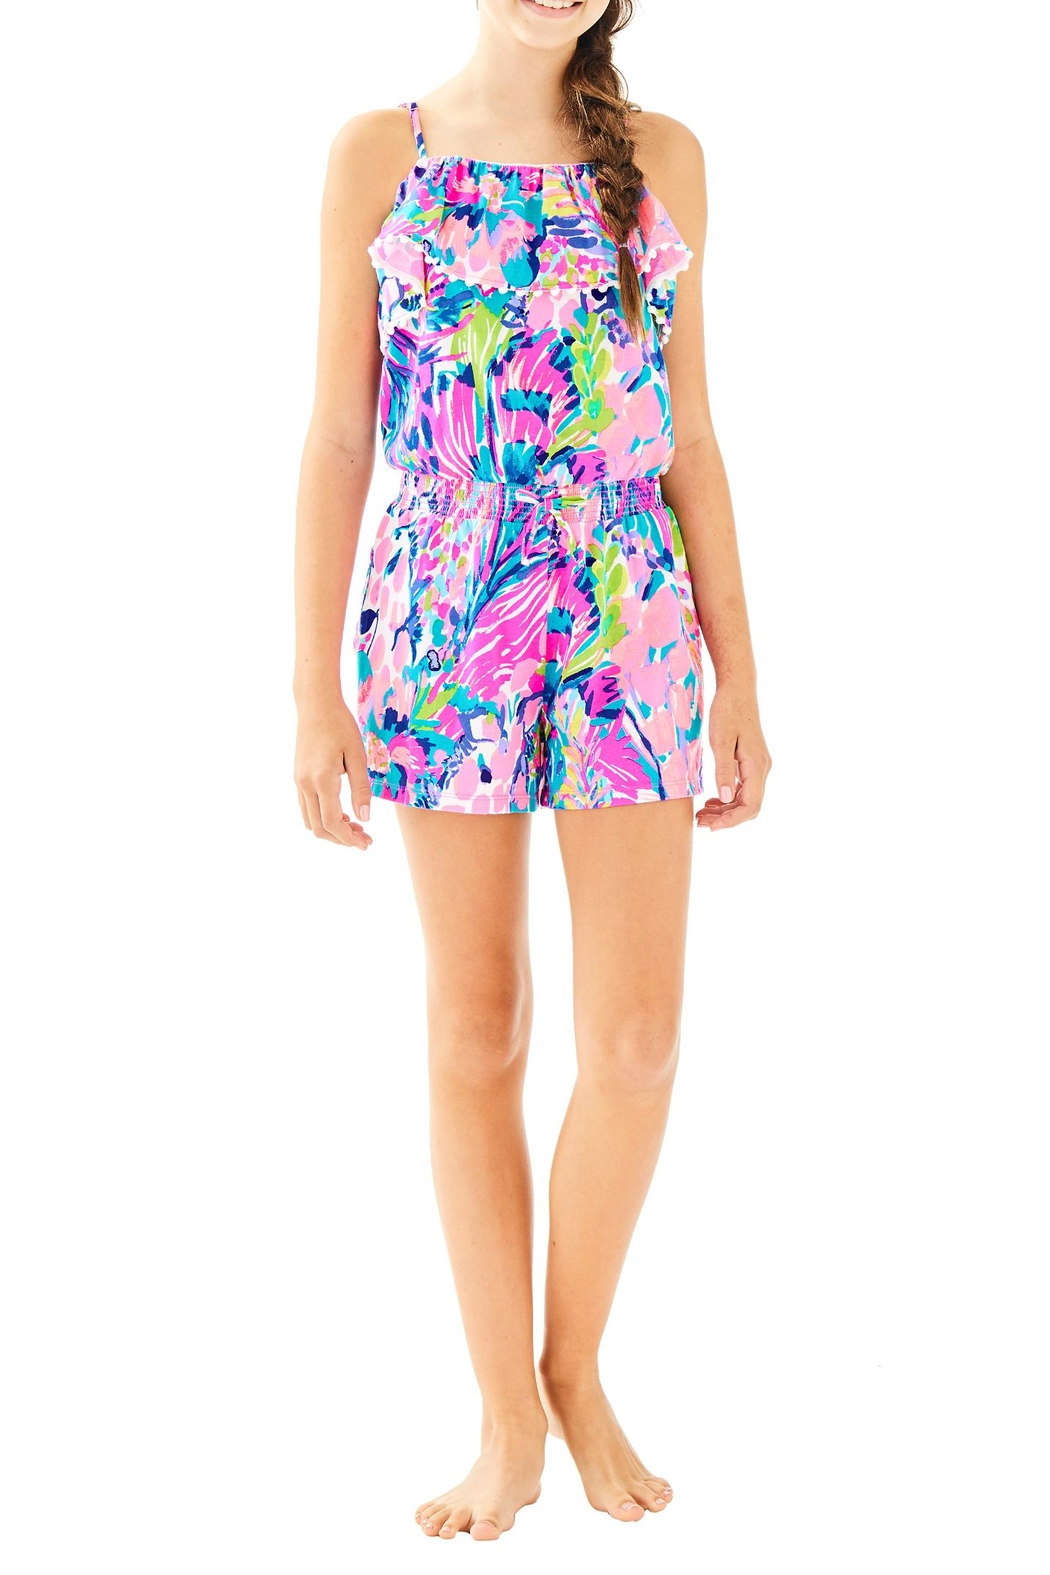 Lilly Pulitzer Girls Leonie Romper - Side Cropped Image